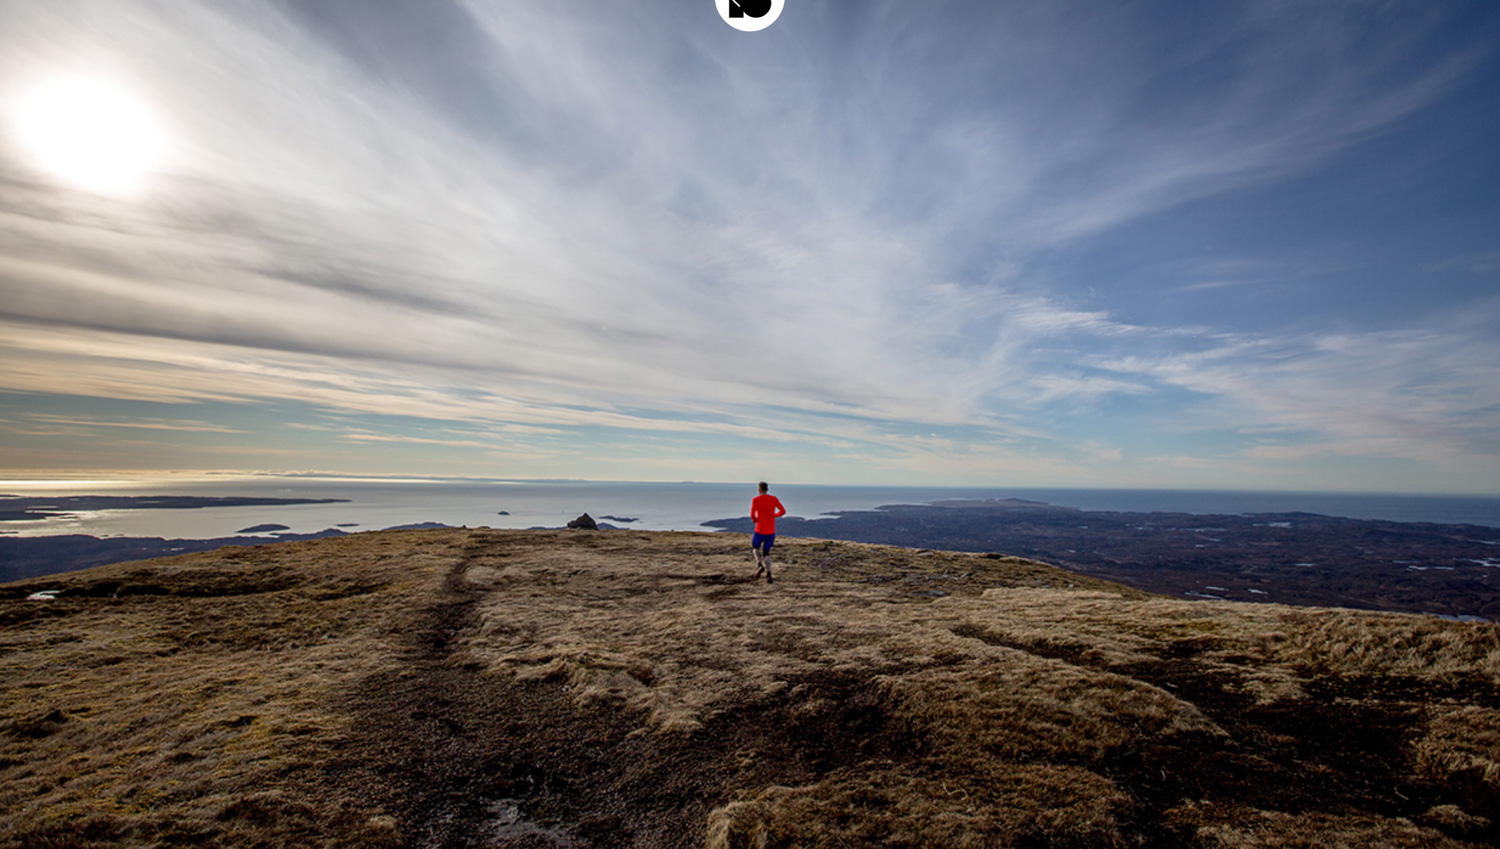 drone_filming_aerial_imagery_north_wales_drone_suilven-7.jpg